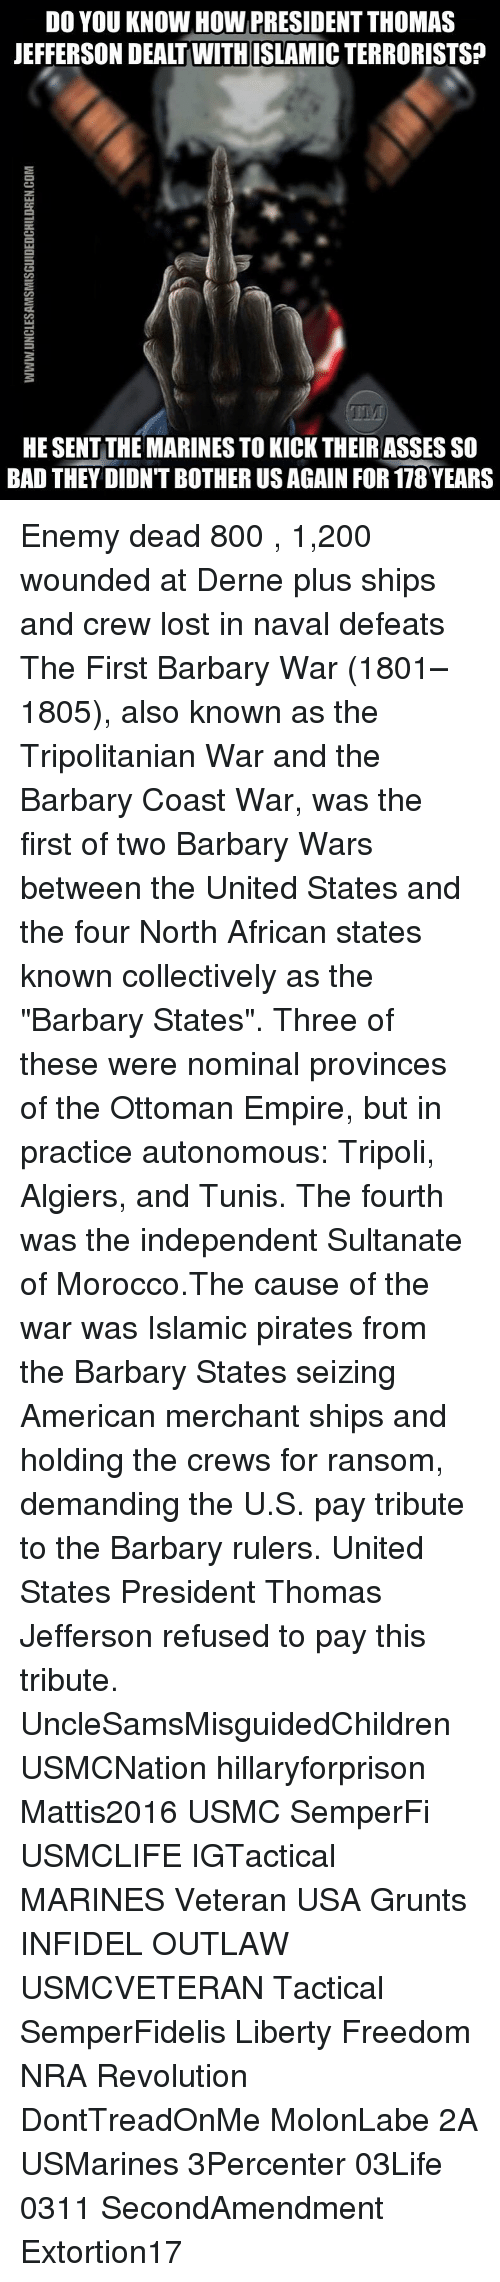 "tripoli: DO YOU KNOW HOW PRESIDENT THOMAS  JEFFERSON DEALT WITHISLAMIC TERRORISTS?  含  HE SENT THE MARINES TO KICK THEIRASSES SO  BAD THEY DIDN'T BOTHER US AGAIN FOR 178 YEARS Enemy dead 800 , 1,200 wounded at Derne plus ships and crew lost in naval defeats The First Barbary War (1801–1805), also known as the Tripolitanian War and the Barbary Coast War, was the first of two Barbary Wars between the United States and the four North African states known collectively as the ""Barbary States"". Three of these were nominal provinces of the Ottoman Empire, but in practice autonomous: Tripoli, Algiers, and Tunis. The fourth was the independent Sultanate of Morocco.The cause of the war was Islamic pirates from the Barbary States seizing American merchant ships and holding the crews for ransom, demanding the U.S. pay tribute to the Barbary rulers. United States President Thomas Jefferson refused to pay this tribute. UncleSamsMisguidedChildren USMCNation hillaryforprison Mattis2016 USMC SemperFi USMCLIFE IGTactical MARINES Veteran USA Grunts INFIDEL OUTLAW USMCVETERAN Tactical SemperFidelis Liberty Freedom NRA Revolution DontTreadOnMe MolonLabe 2A USMarines 3Percenter 03Life 0311 SecondAmendment Extortion17"